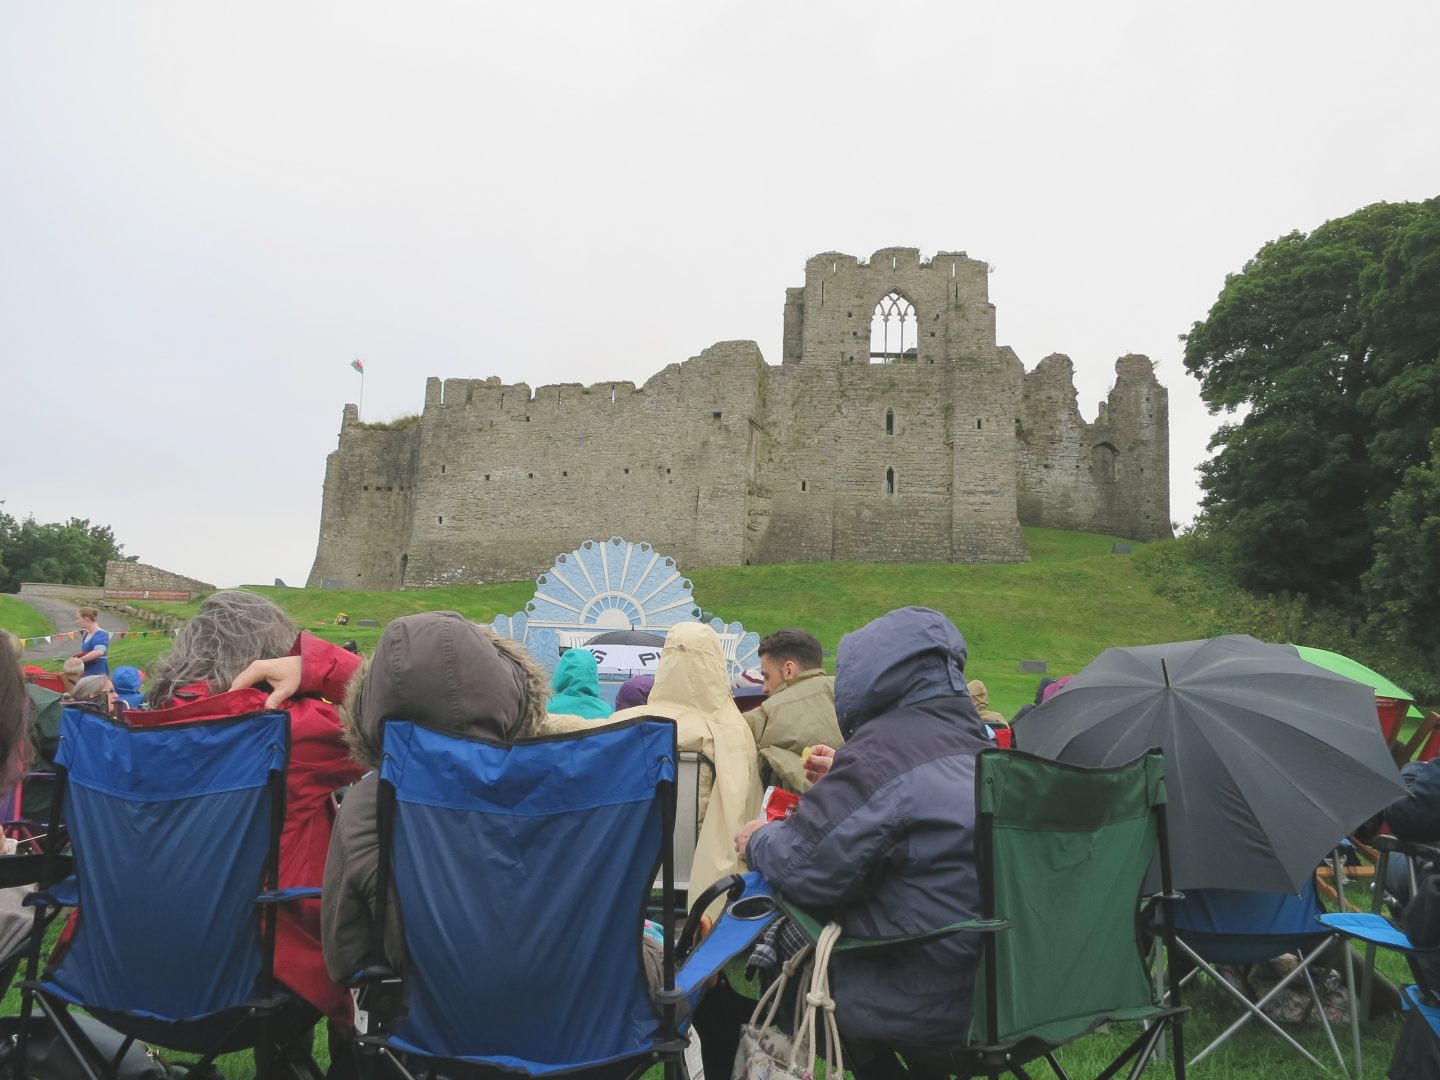 pride and prejudice oystermouth castle swansea bay enjoy august 2017